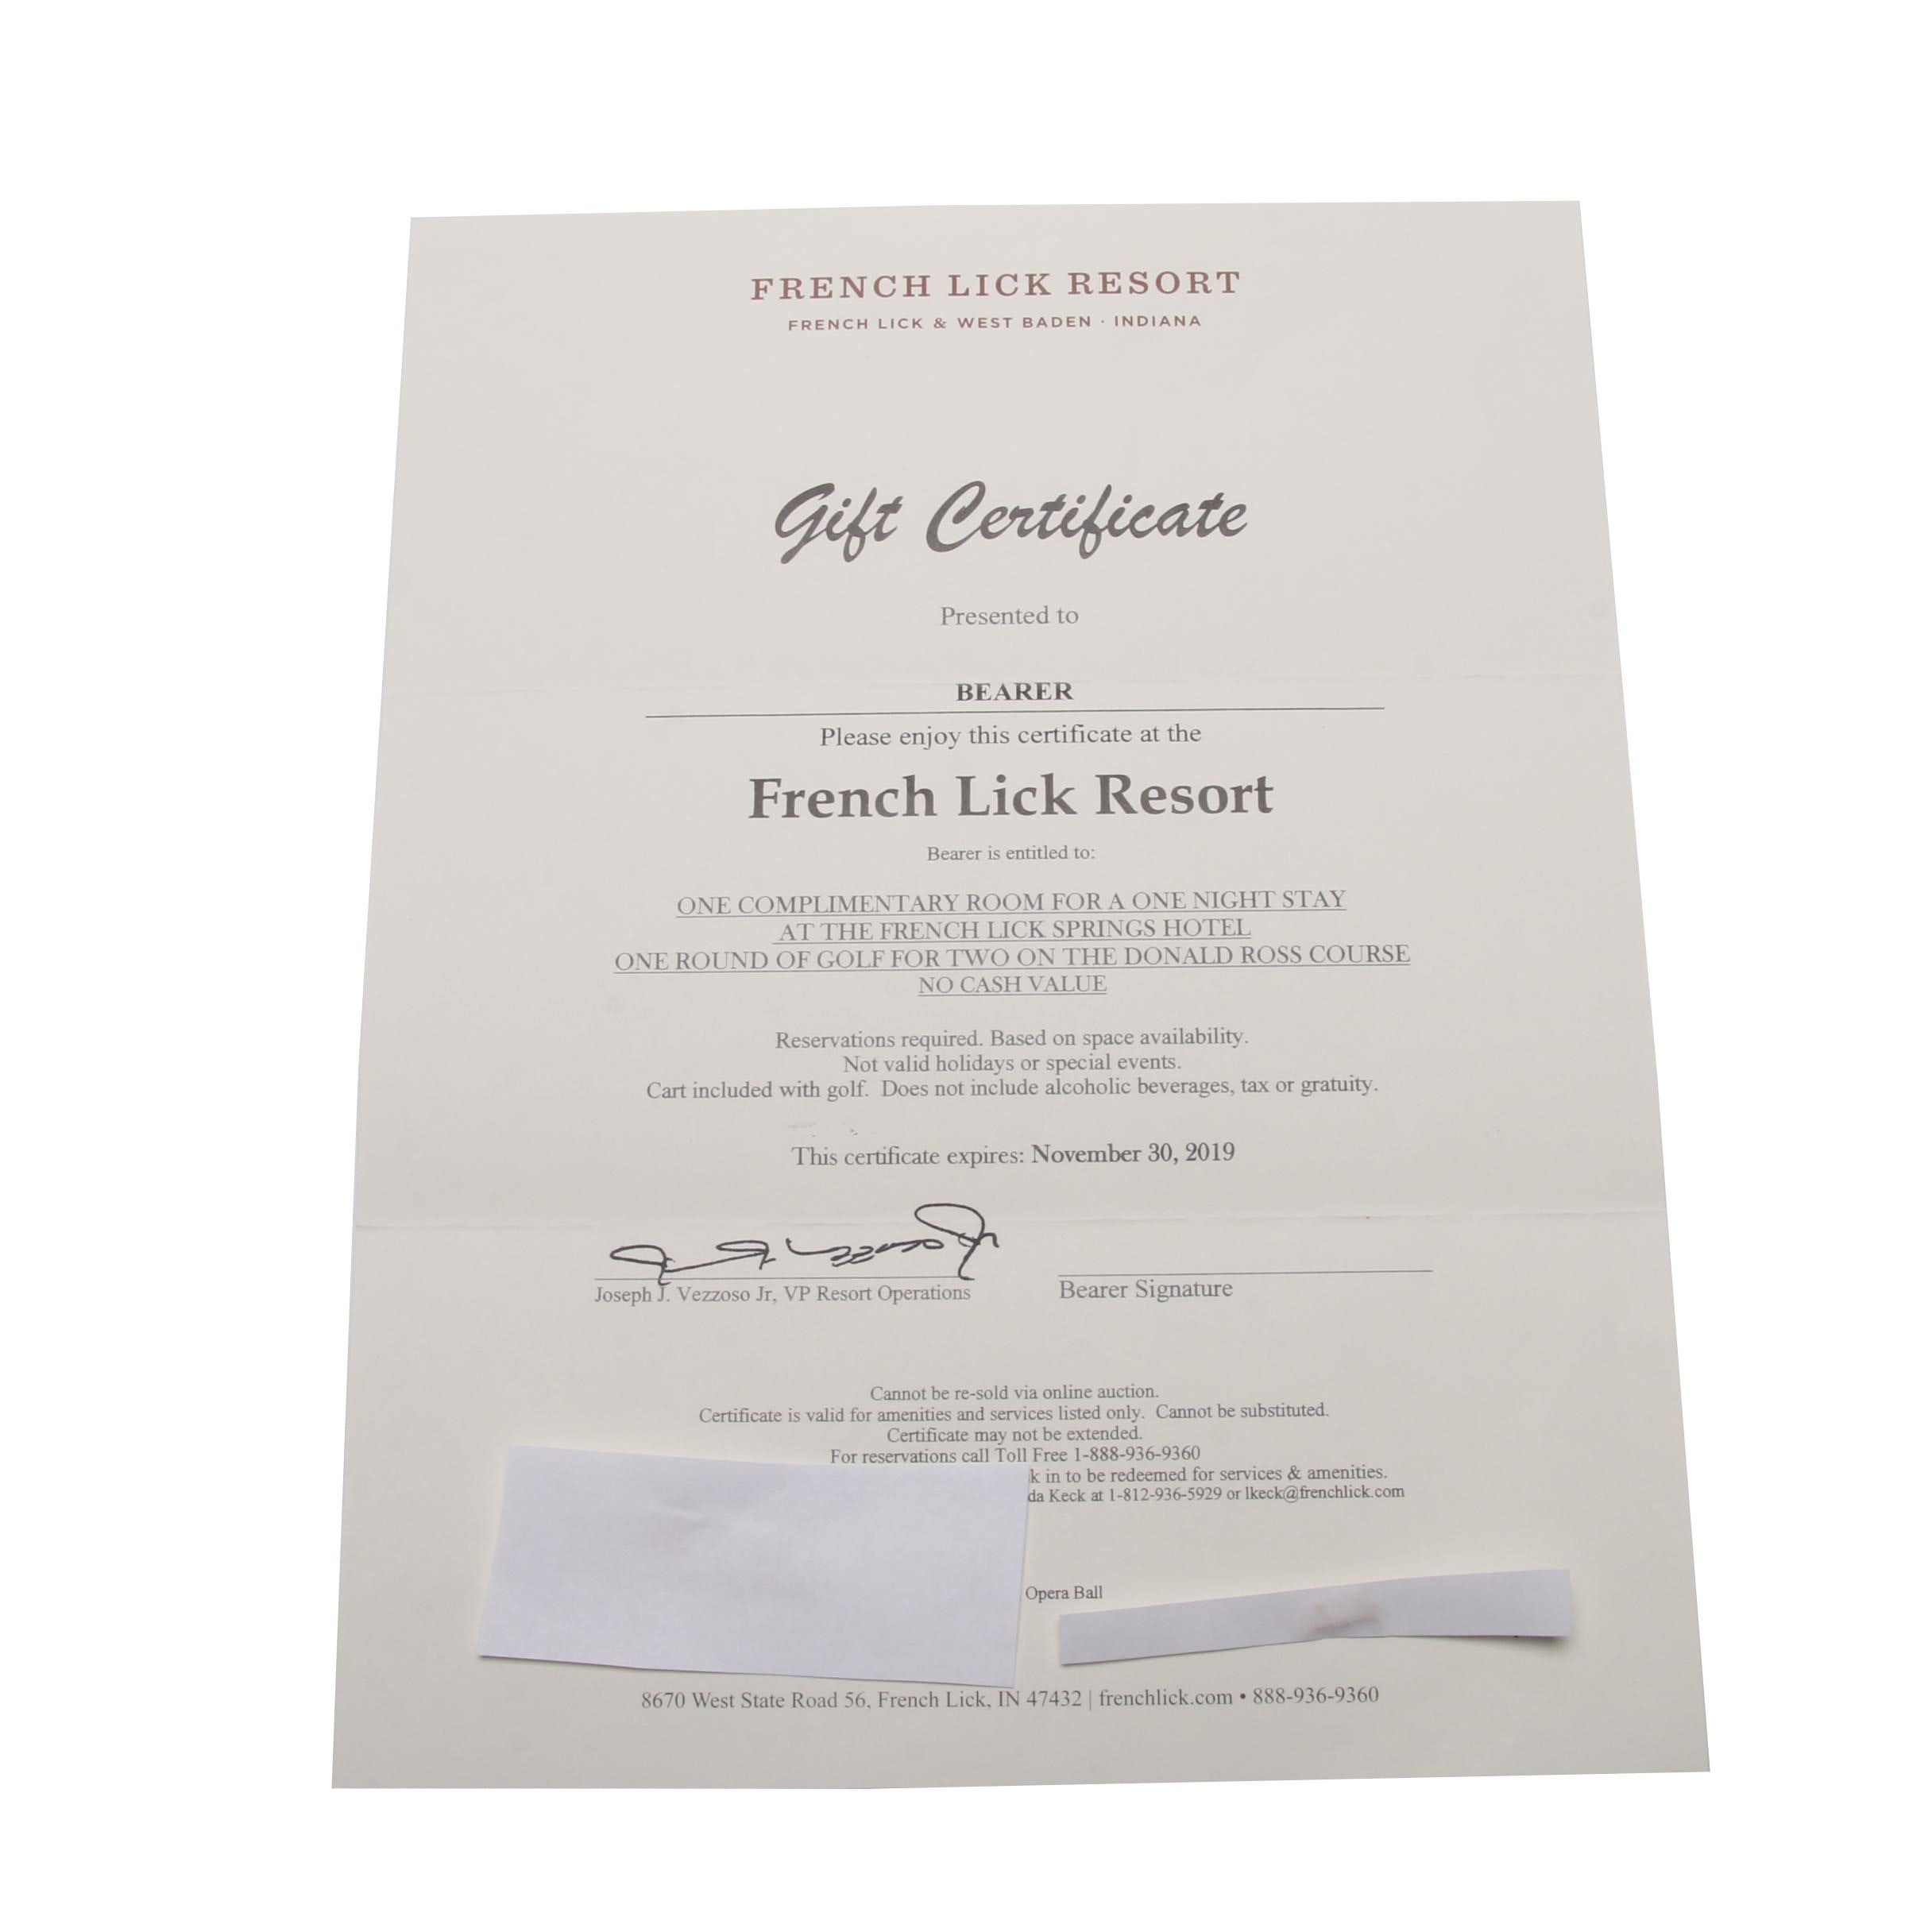 French Lick Resort Certificate for One Night Stay and Round of Golf